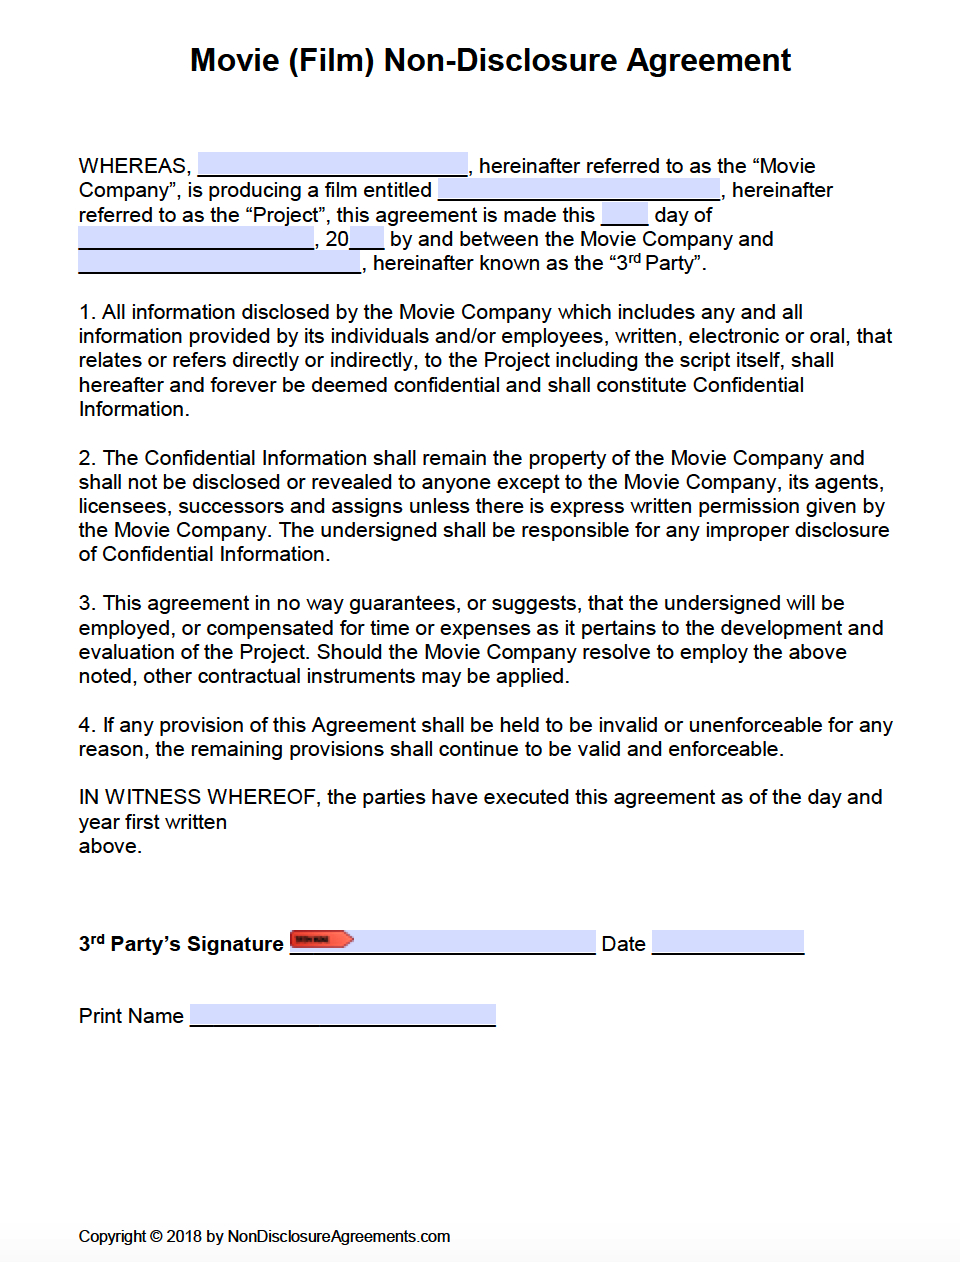 Free Film (Movie) Non-Disclosure Agreement (Nda) Template | Pdf | Word - Free Printable Non Disclosure Agreement Form